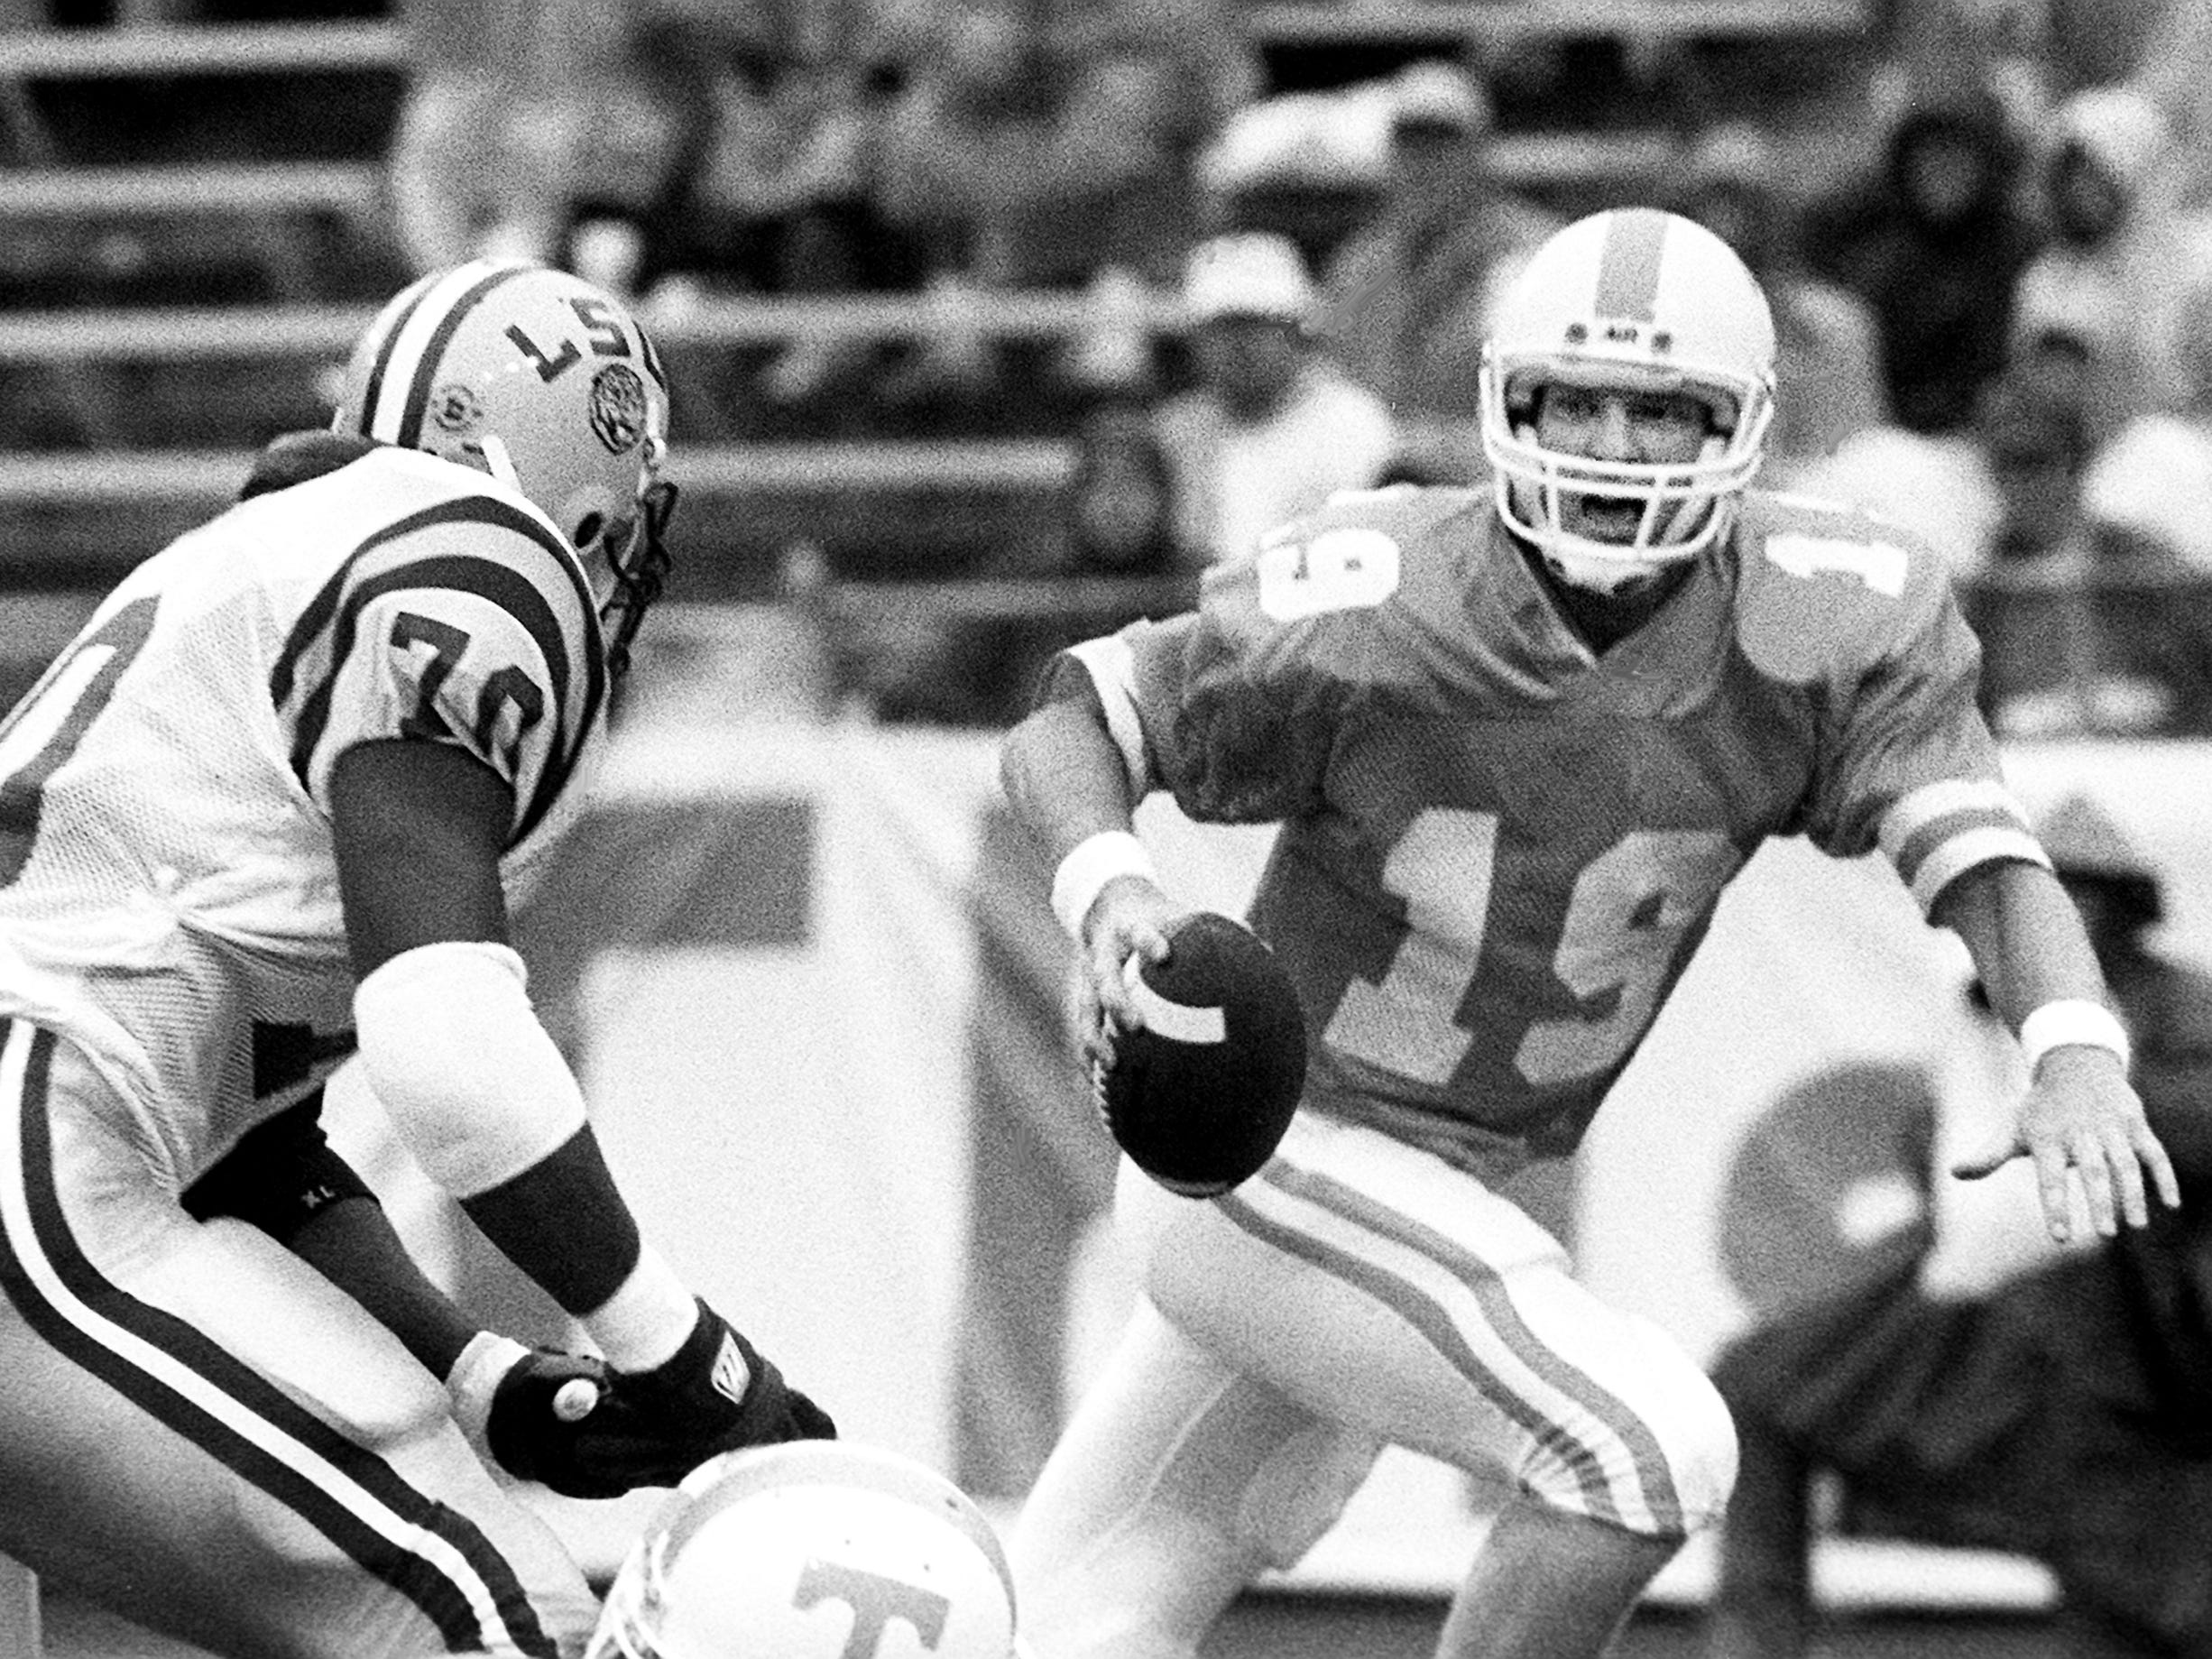 Tennessee senior quarterback Jeff Francis (19) gets pressure from LSU defensive end Clint James (70). Winless Tennessee fall 34-9 to ninth-ranked LSU before 92,849 fans at Neyland Stadium in Knoxville Sept. 17, 1988.